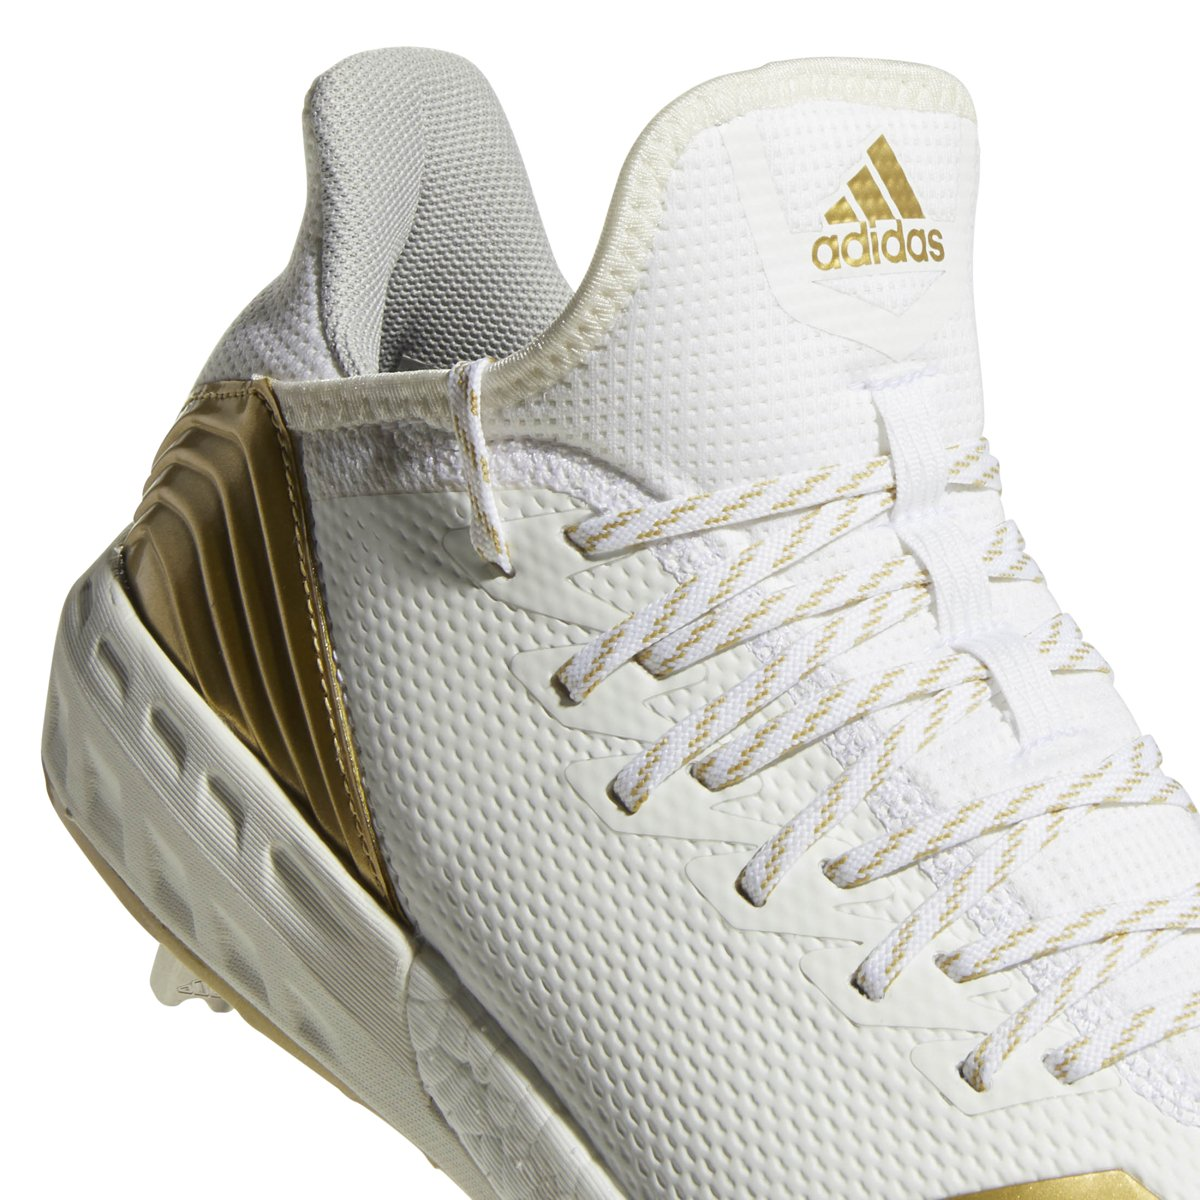 adidas Icon 4 Cleat - Men's Baseball 7.5 White/Gold Metallic